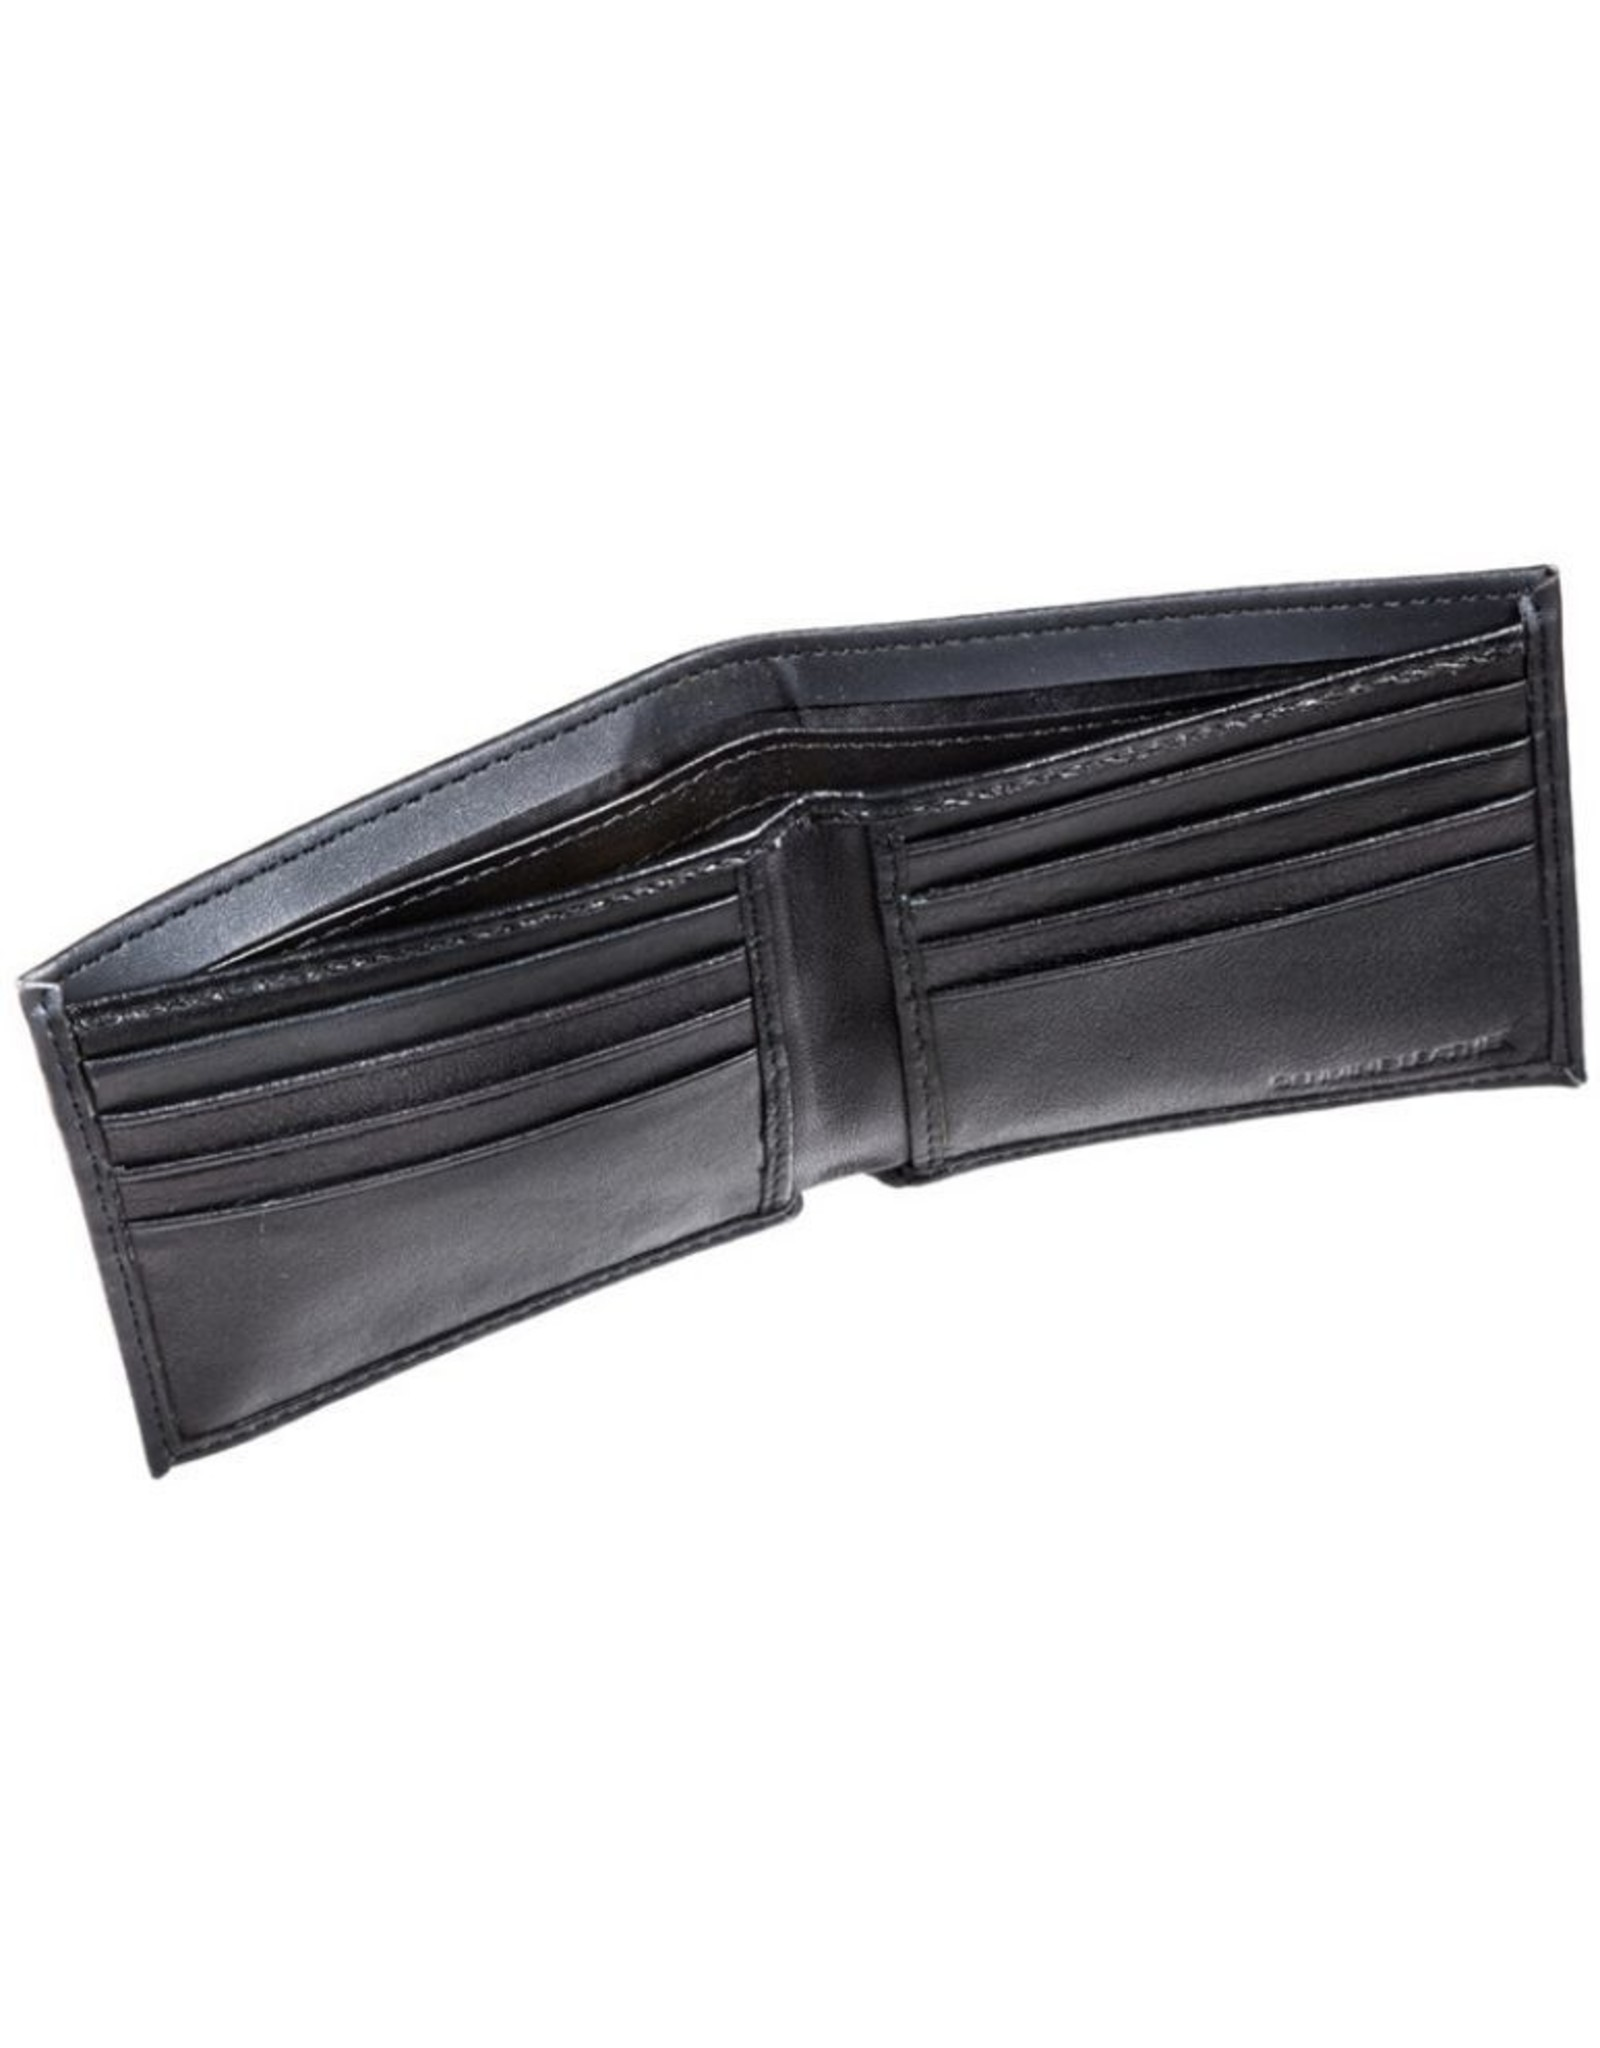 Team Sports Ameica NHL Bi-Fold Leather Embossed Wallet Canadiens